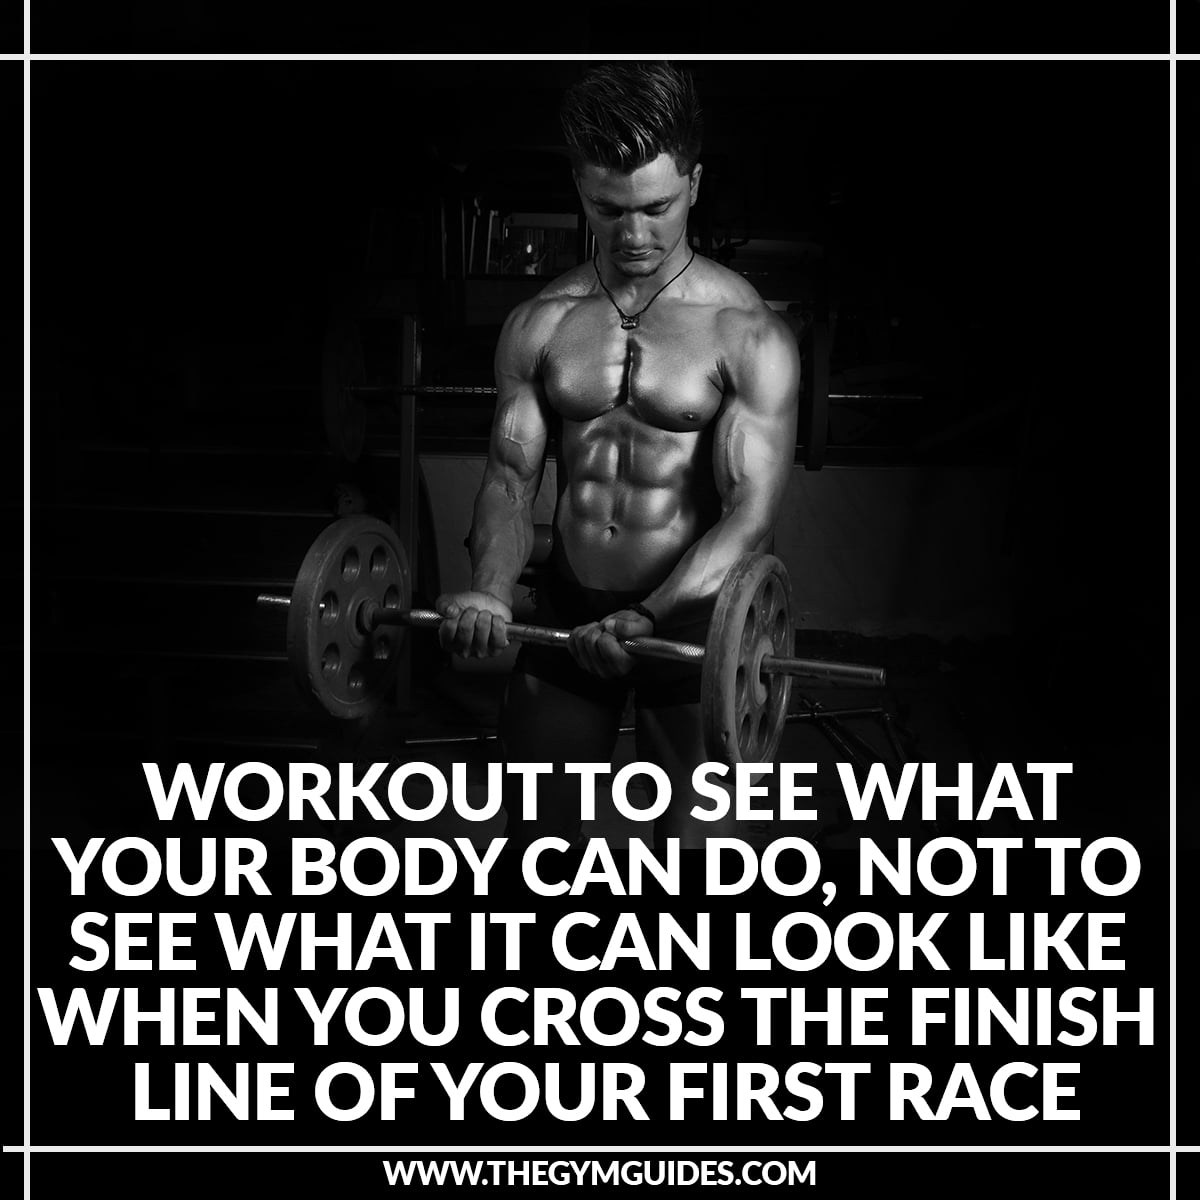 Workout to see what your body can do, not to see what it can look like – when you cross the finish line of your first race